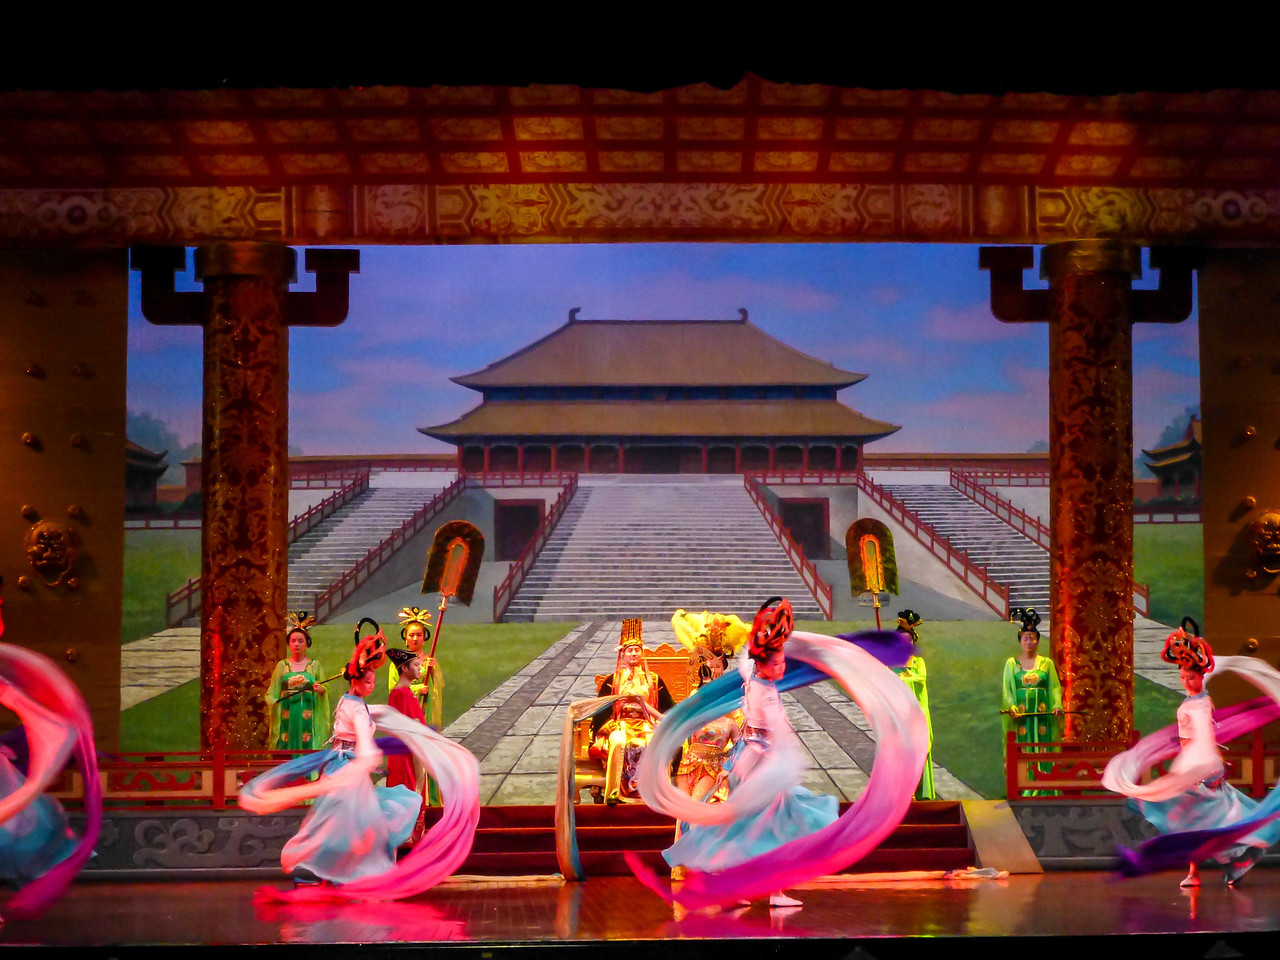 We ended our day with a dinner theatre in Xian watching these beautiful scenes along with traditional Chinese music.